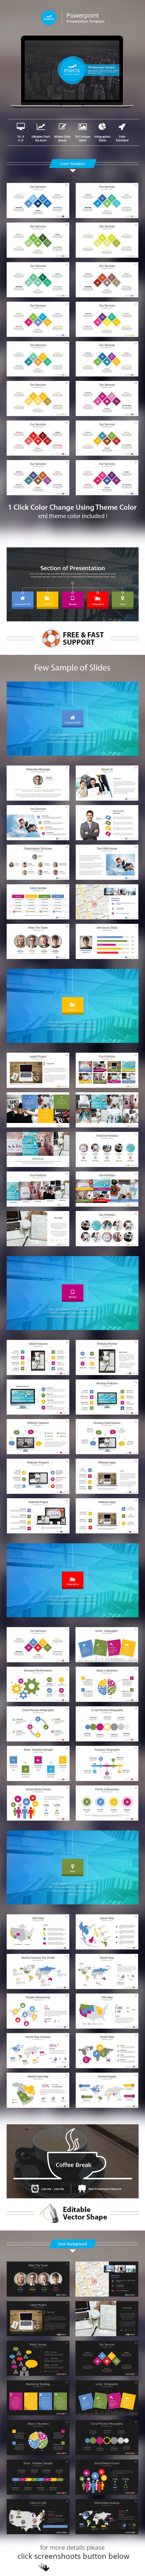 Points - Powerpoint Presentation Template - Abstract PowerPoint Templates